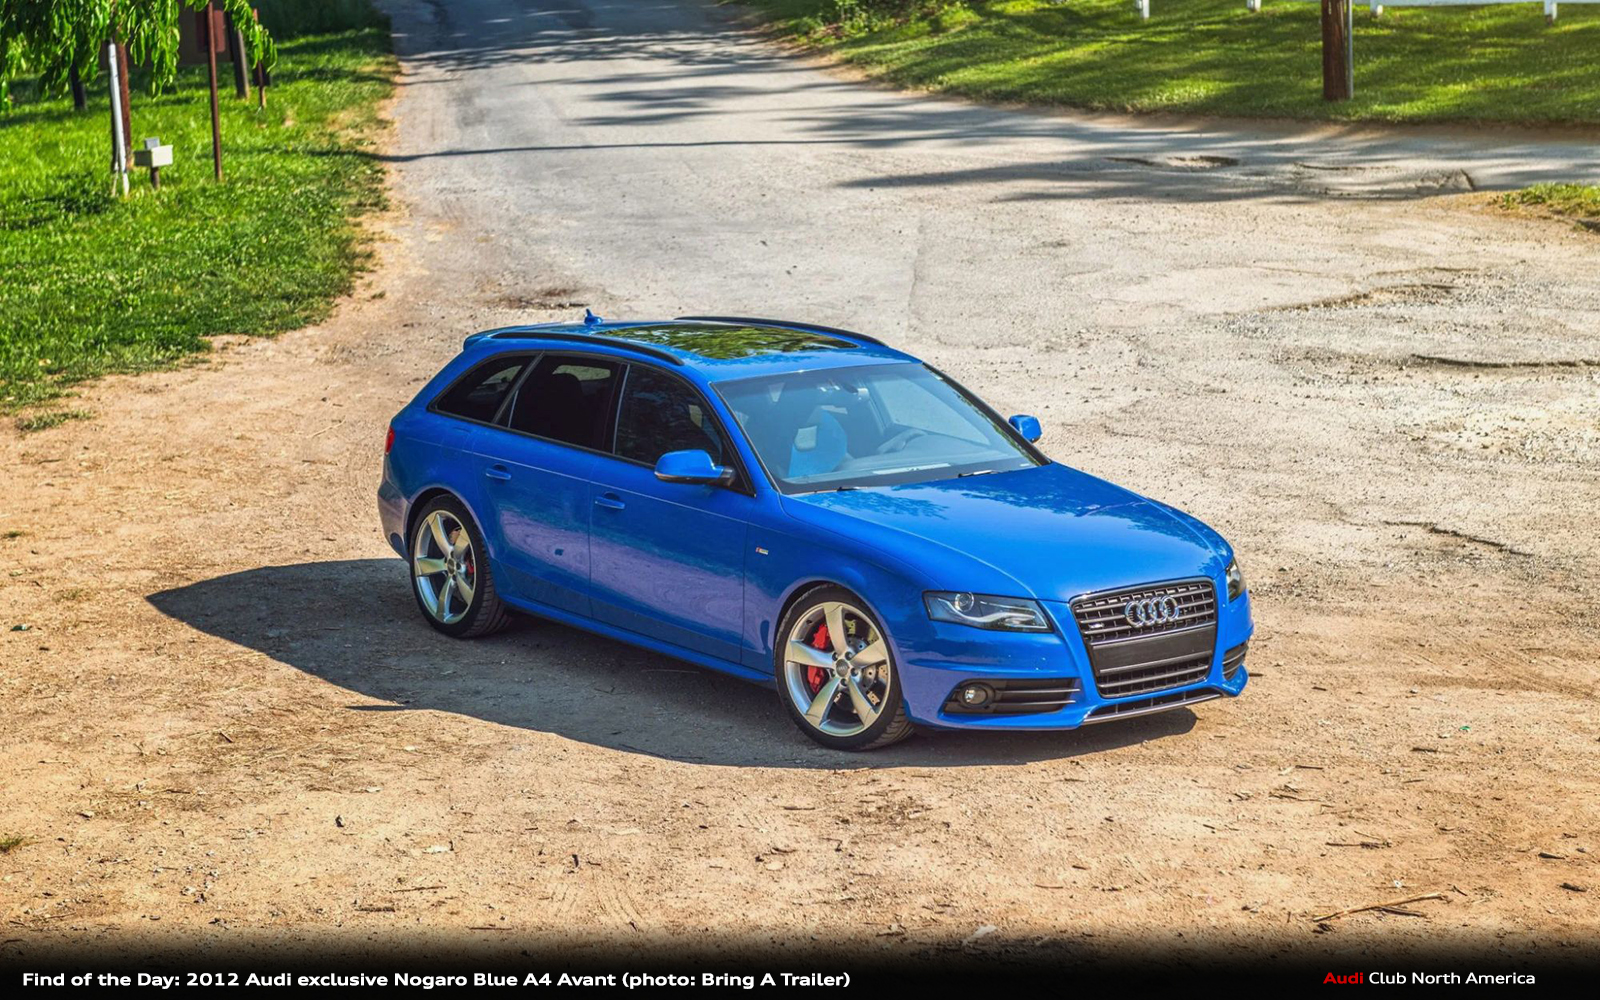 Find of the Day: 2012 Audi exclusive Nogaro Blue A4 Avant